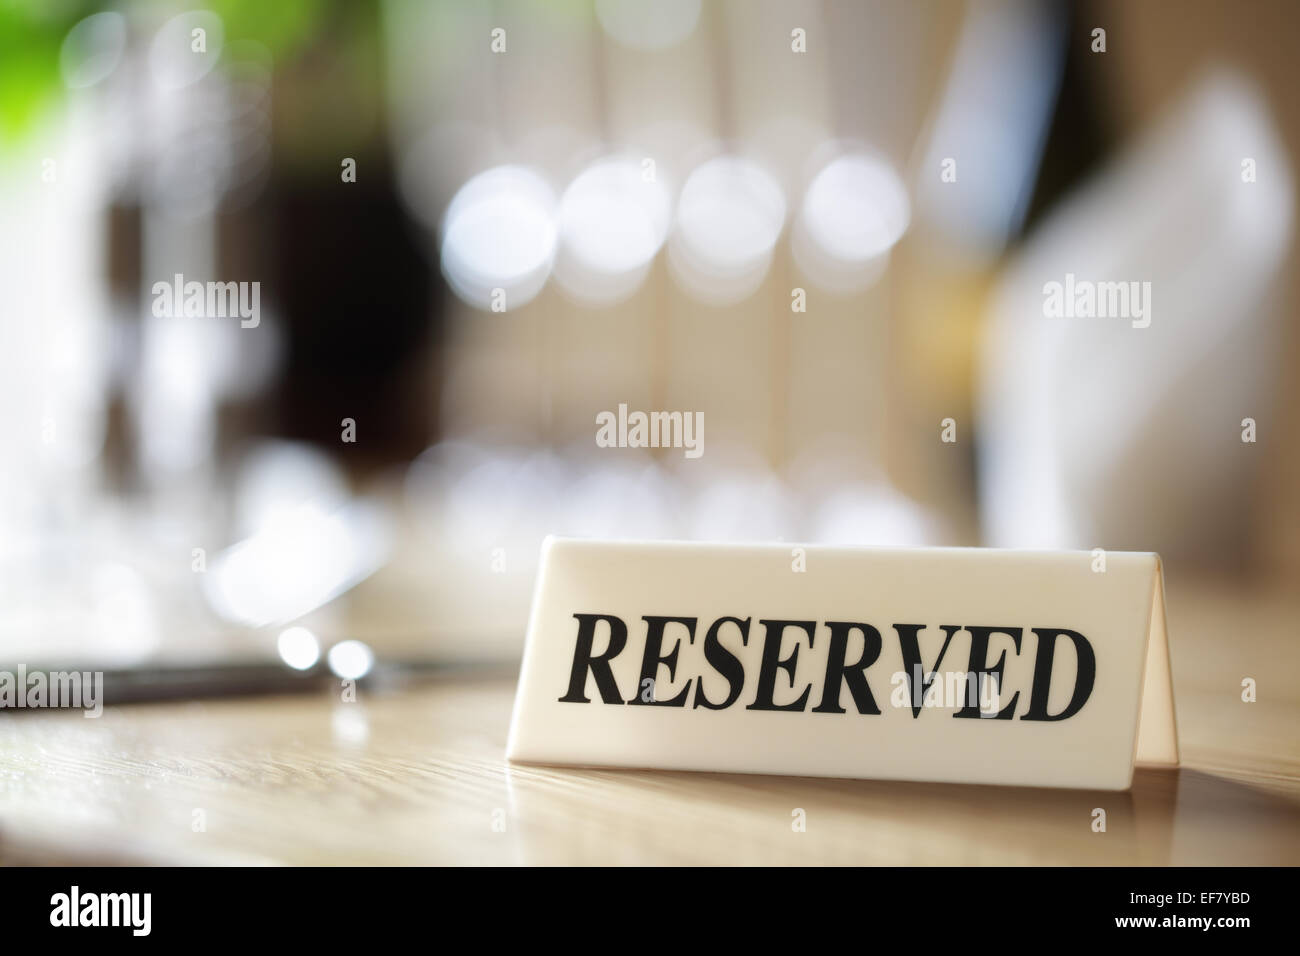 Reserved sign on restaurant table - Stock Image